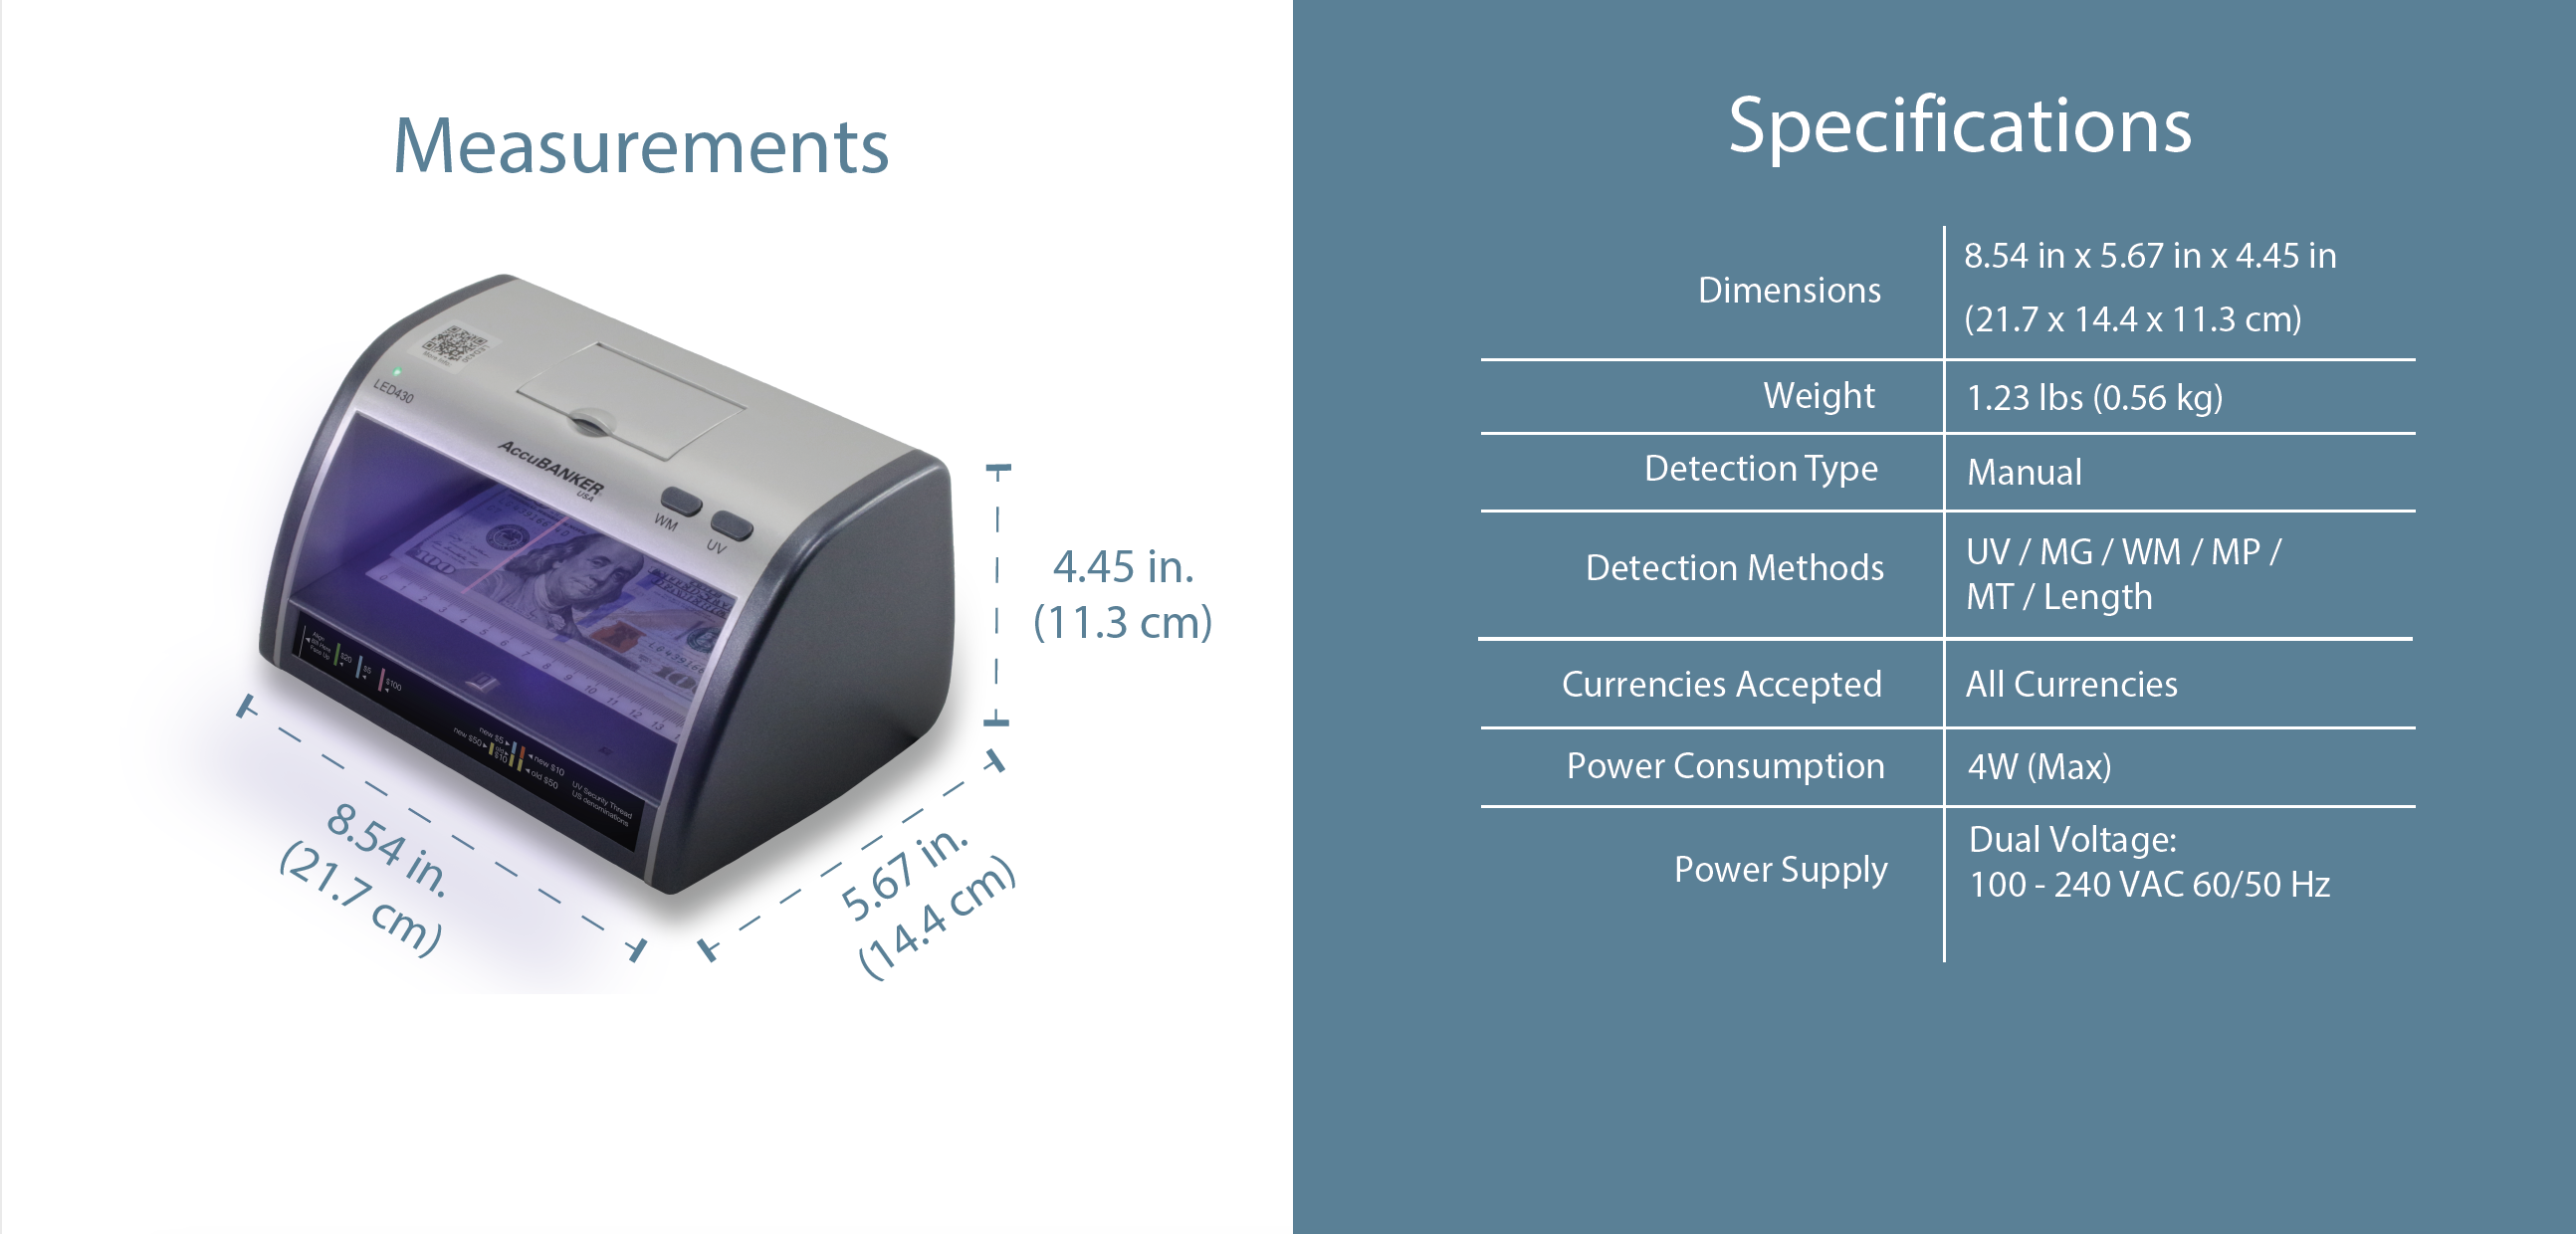 LED430 Counterfeit Bill/Document Validator with Magnifier Features & Specifications